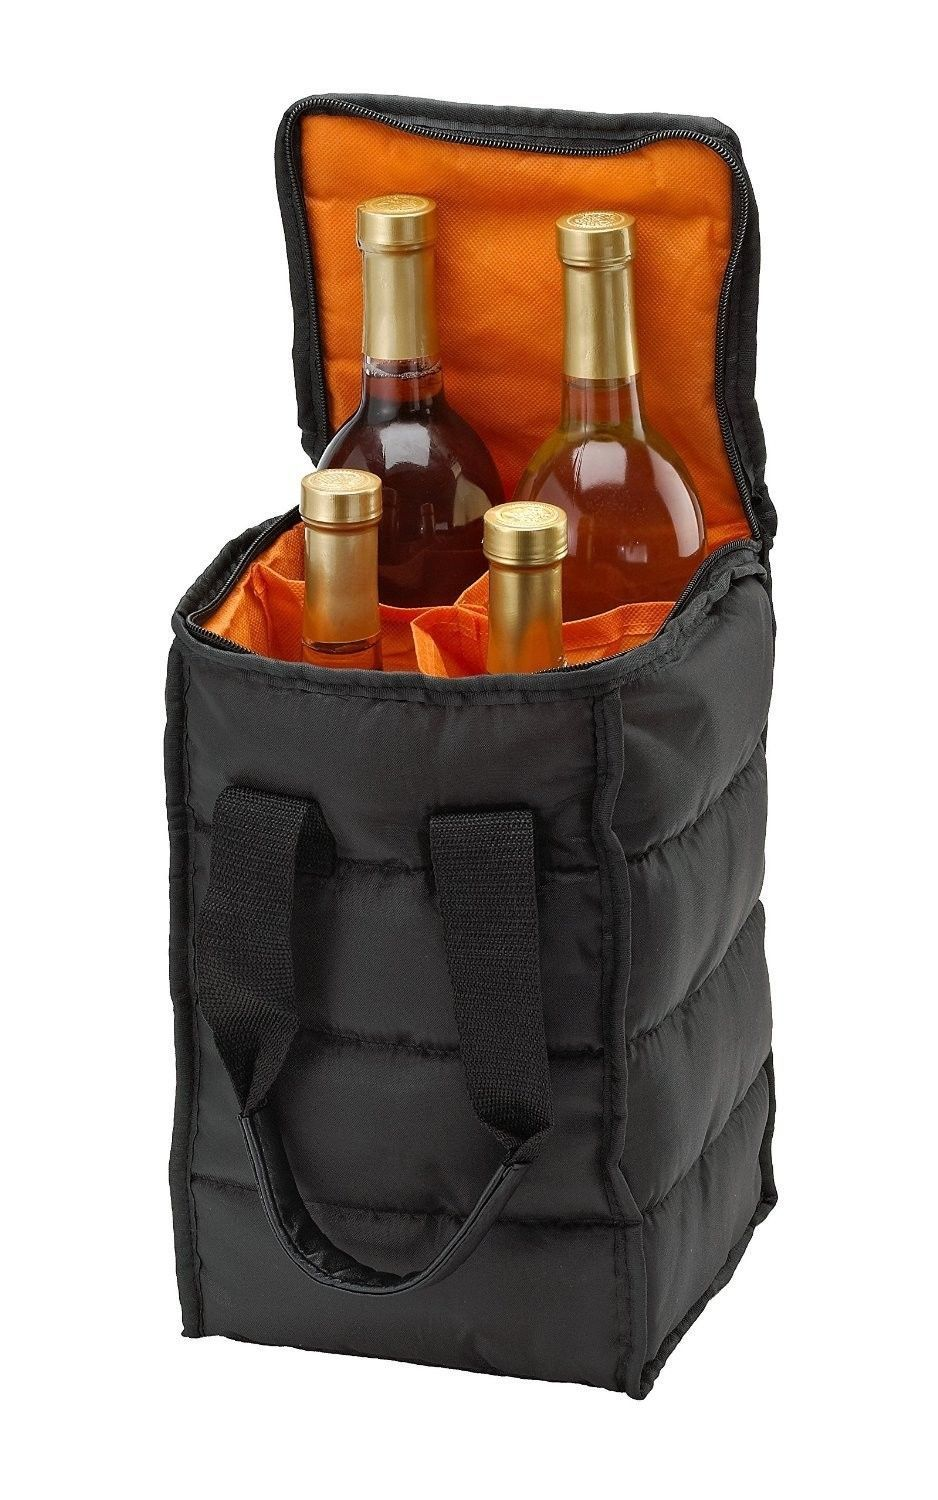 Wine Bottles Carrier Beach Picnic Cooler Travel Tote Bag Zippered Case Holder